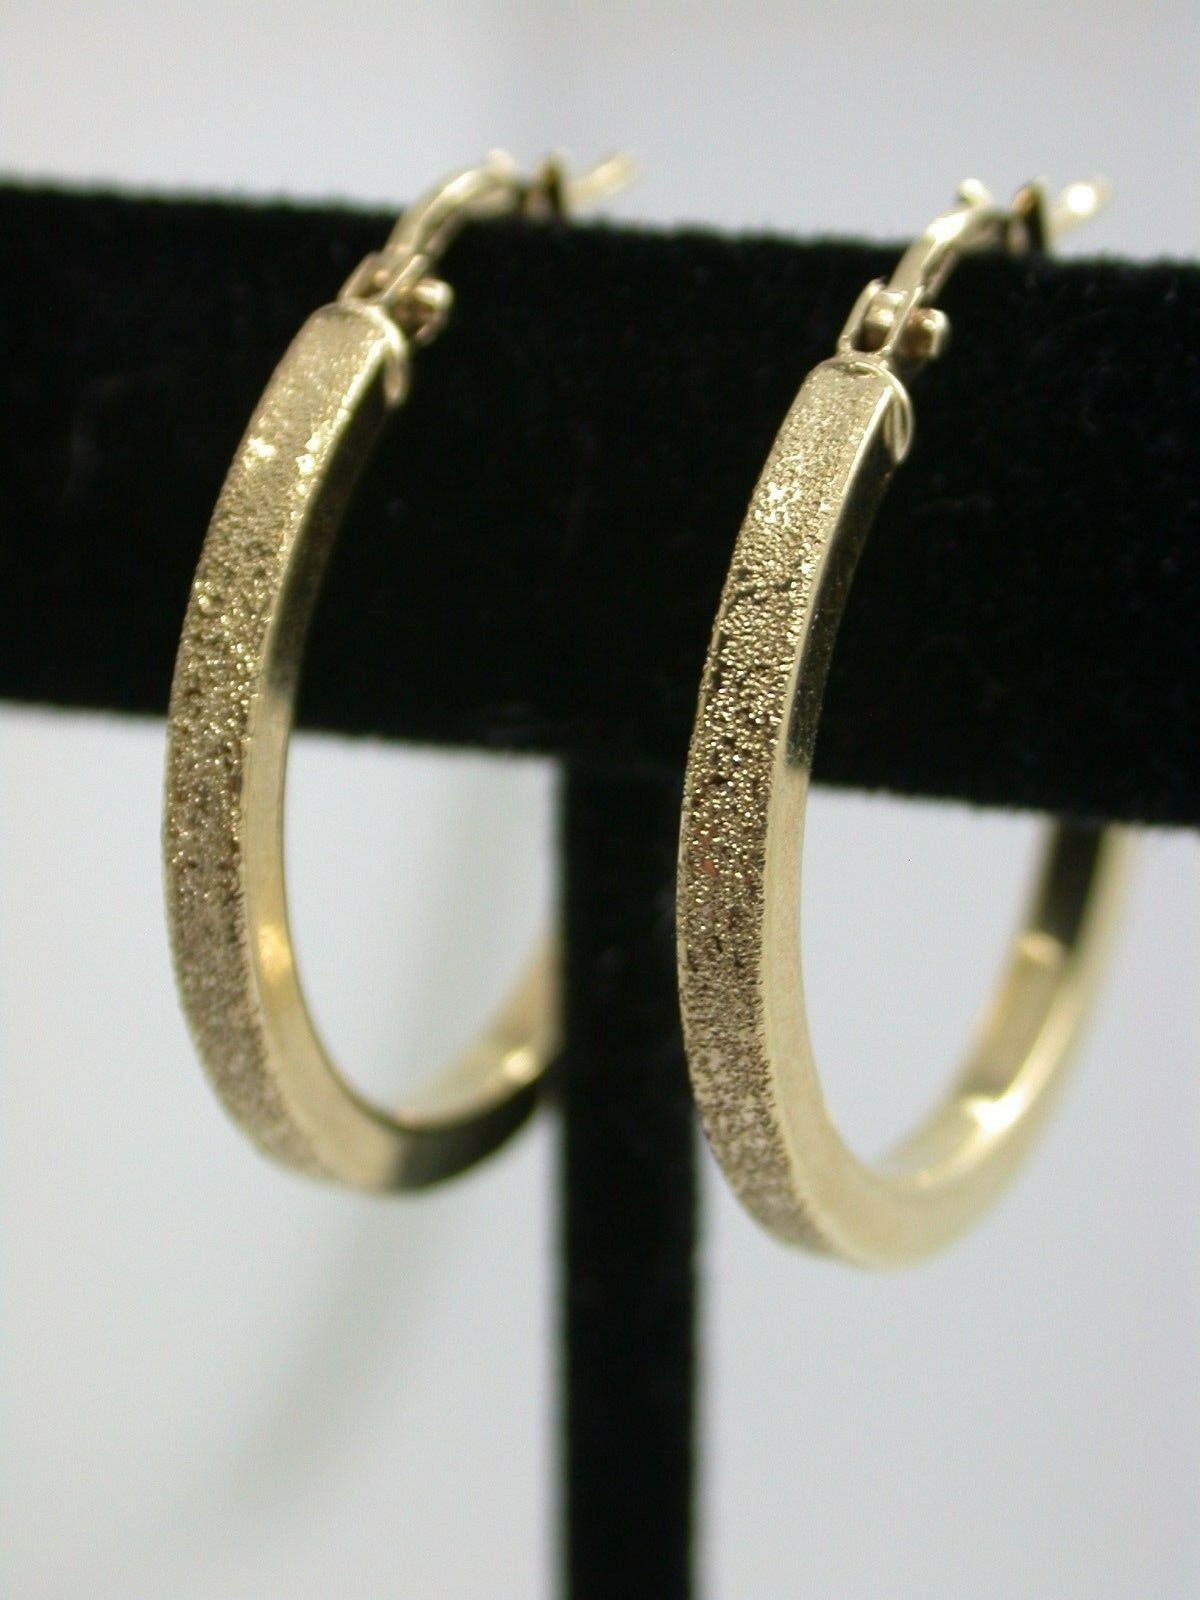 Genuine Brand New 10kt Yellow gold Diamond Etched Hoop Earrings (Large) (J1I)